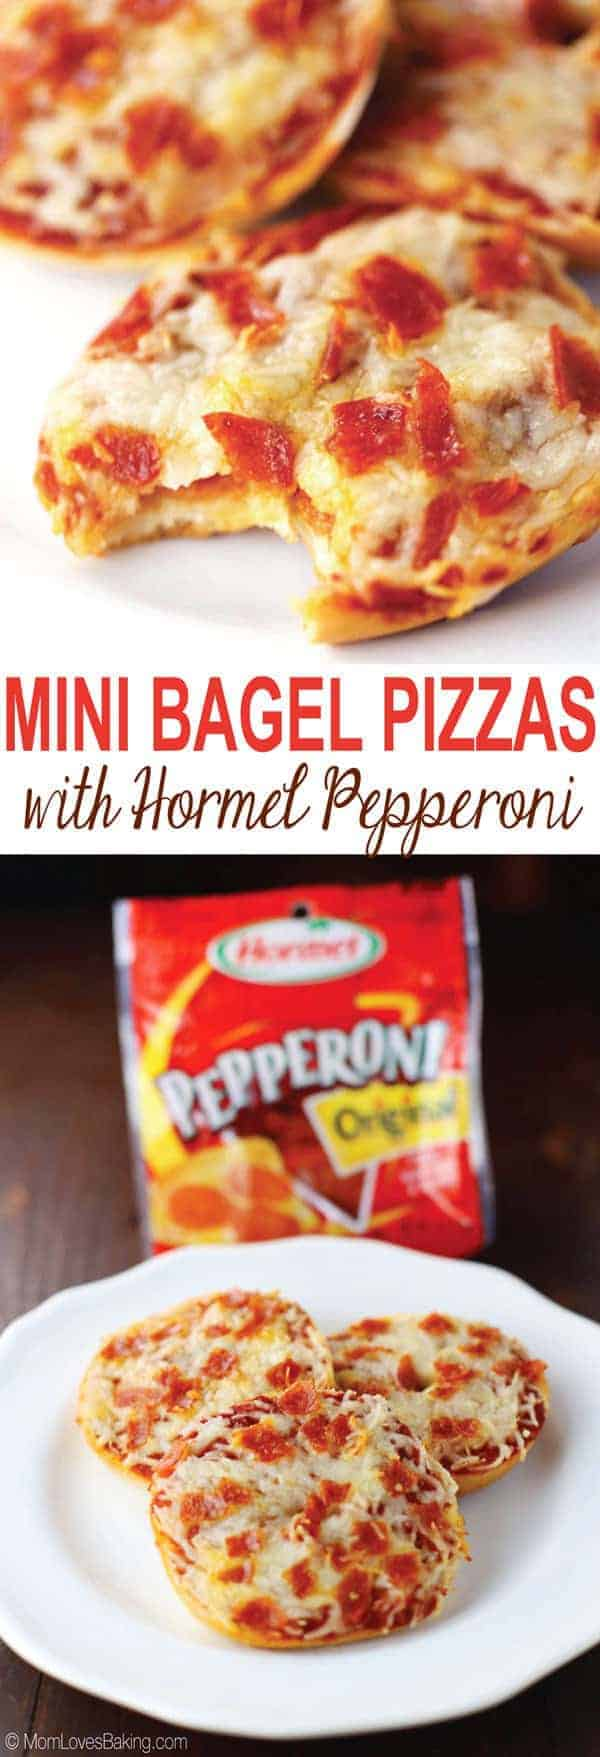 Mini Bagel Pizzas with Hormel Pepperoni